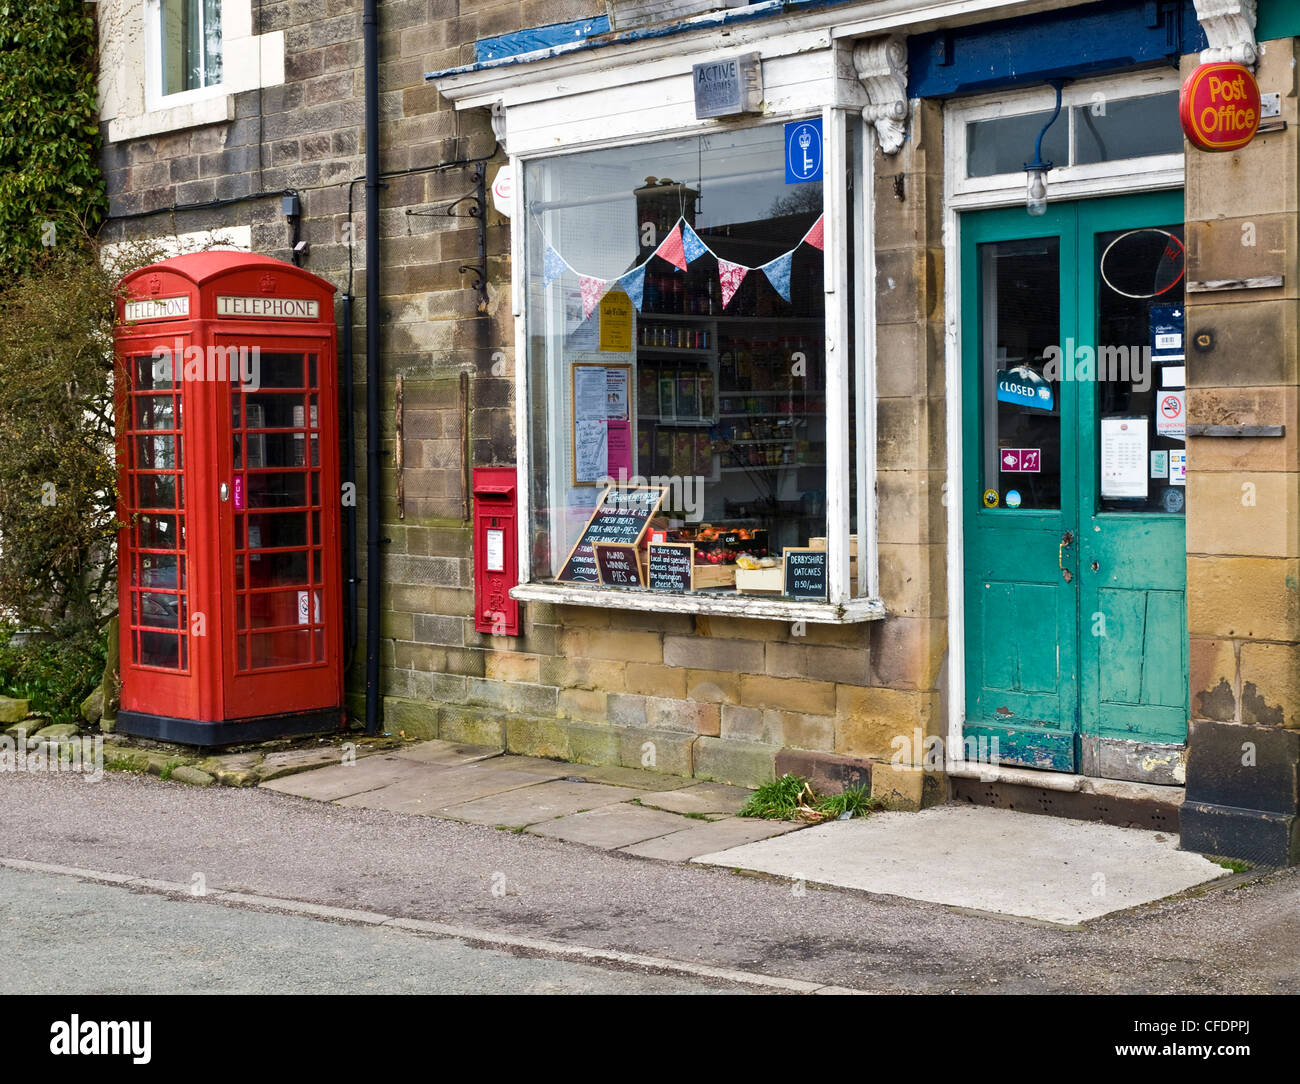 Post Office and telephone box in the small village of Longnor, Peak District, Staffordshire - Stock Image